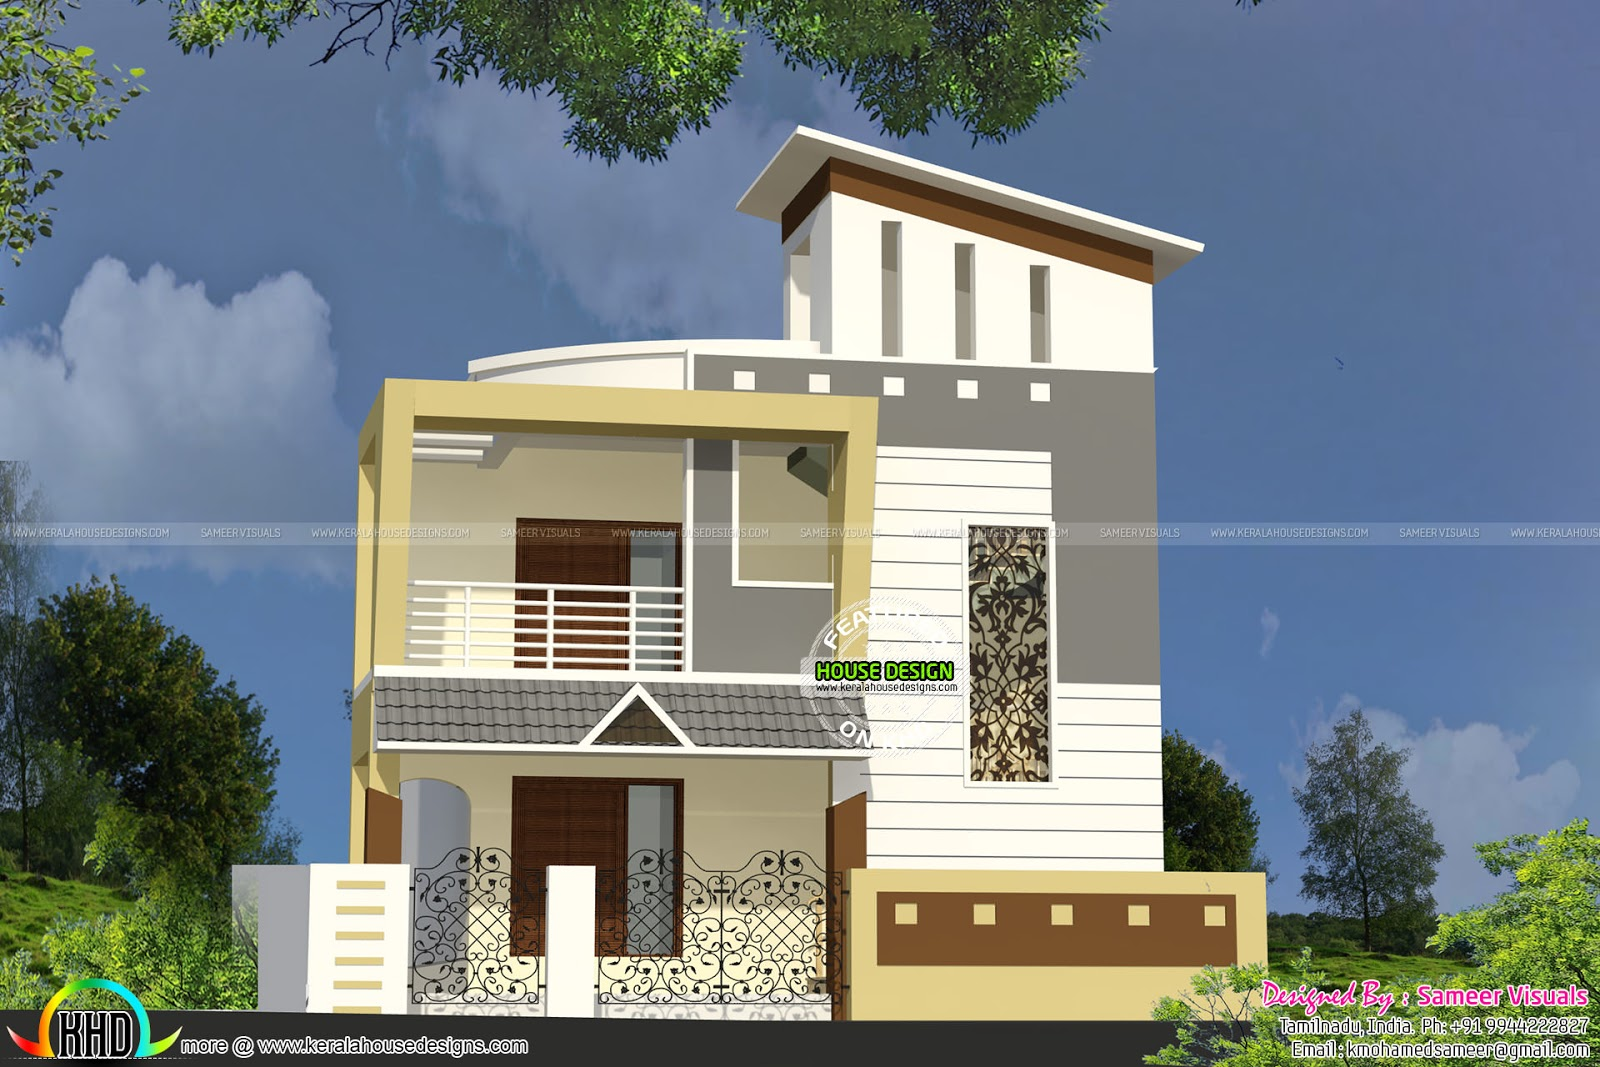 Double floor small home kerala home design and floor plans for Small two floor house design